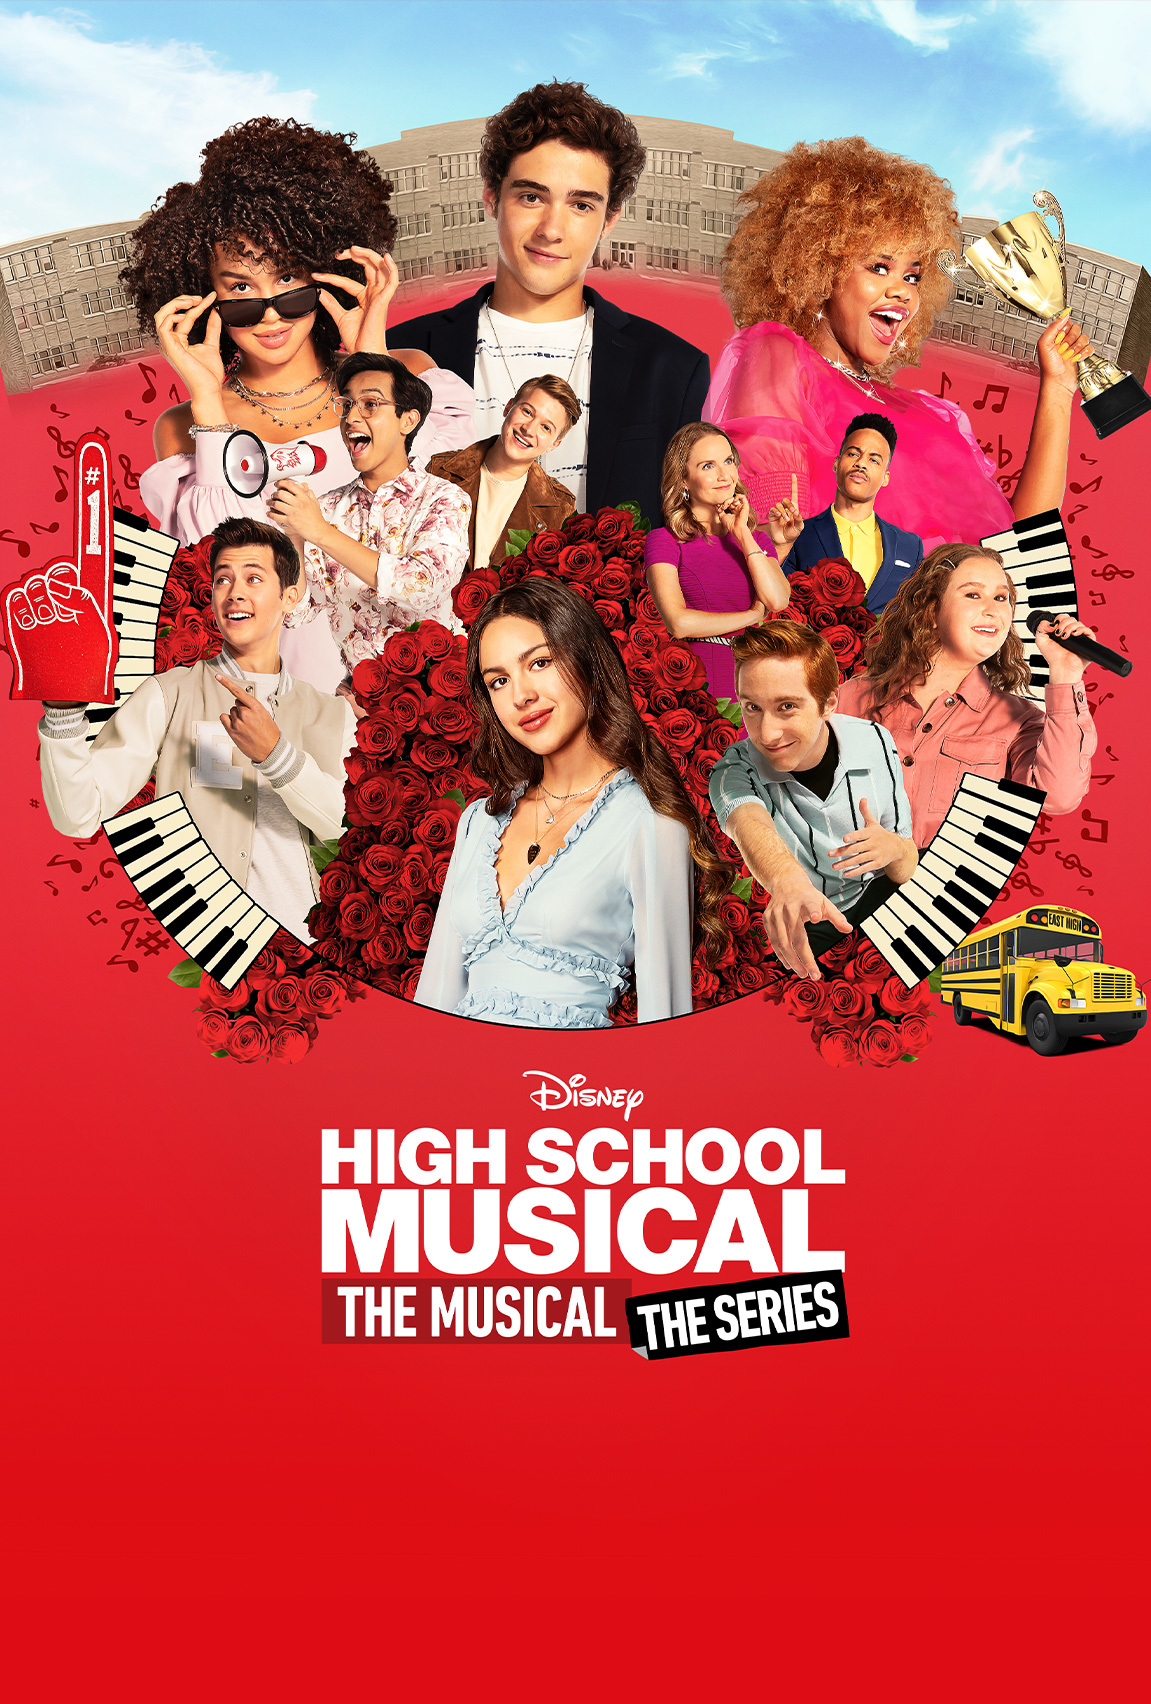 High School Musical: The Musical: The Series on Disney Plus